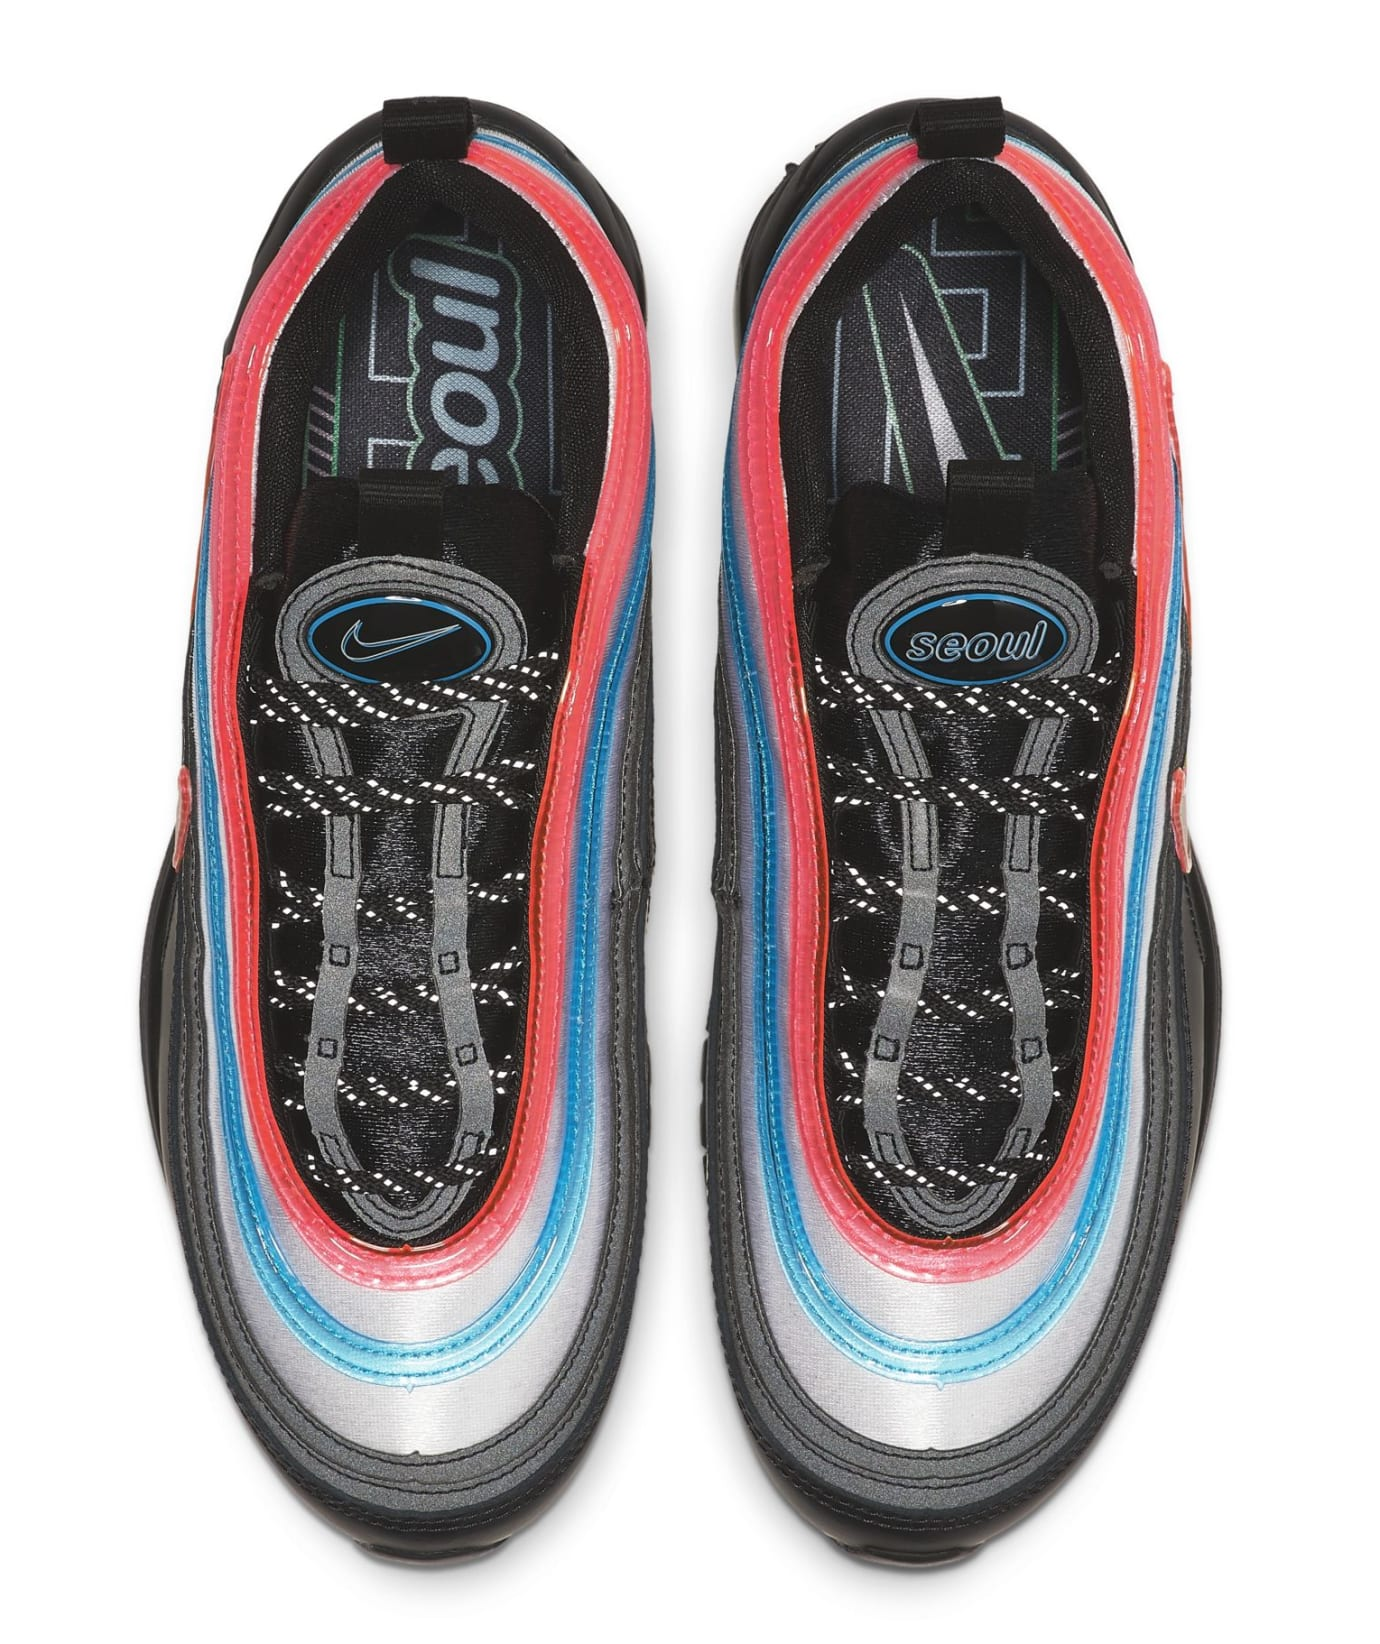 superior quality save up to 80% factory outlets Nike Air Max 97 'Neon Seoul' Release Date April 2019 | Sole ...